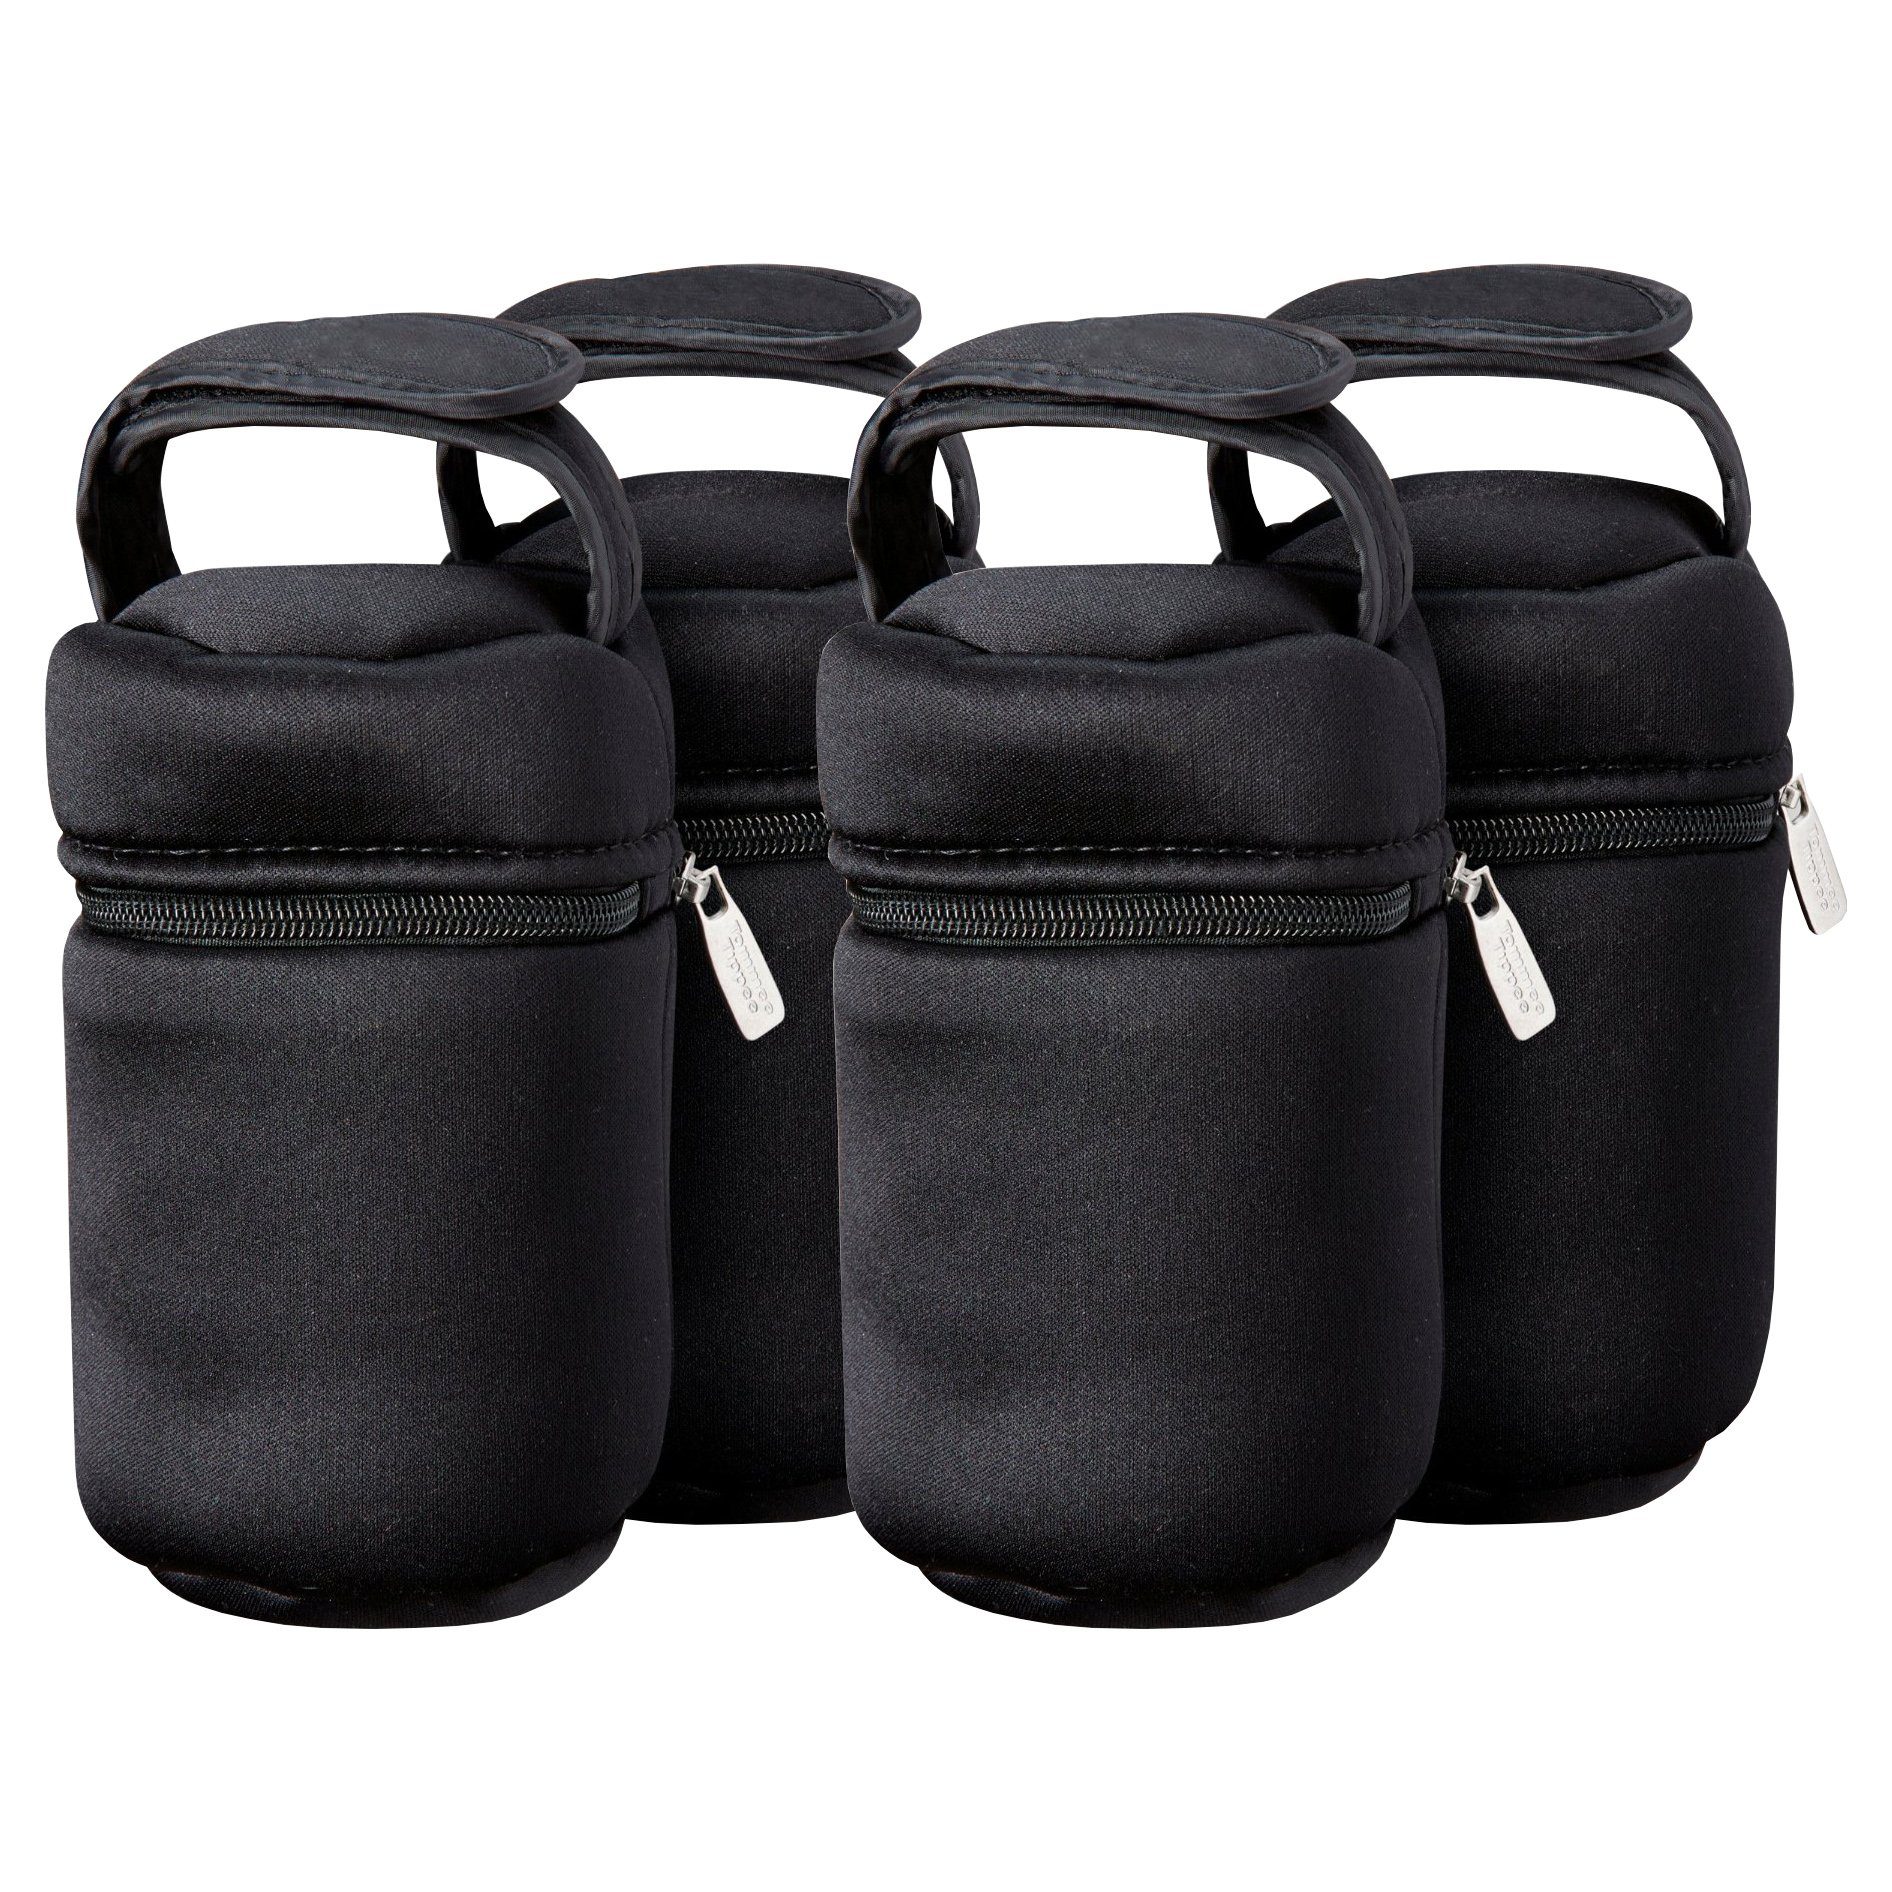 Tommee Tippee Insulated Bottle Bag, 4-Count